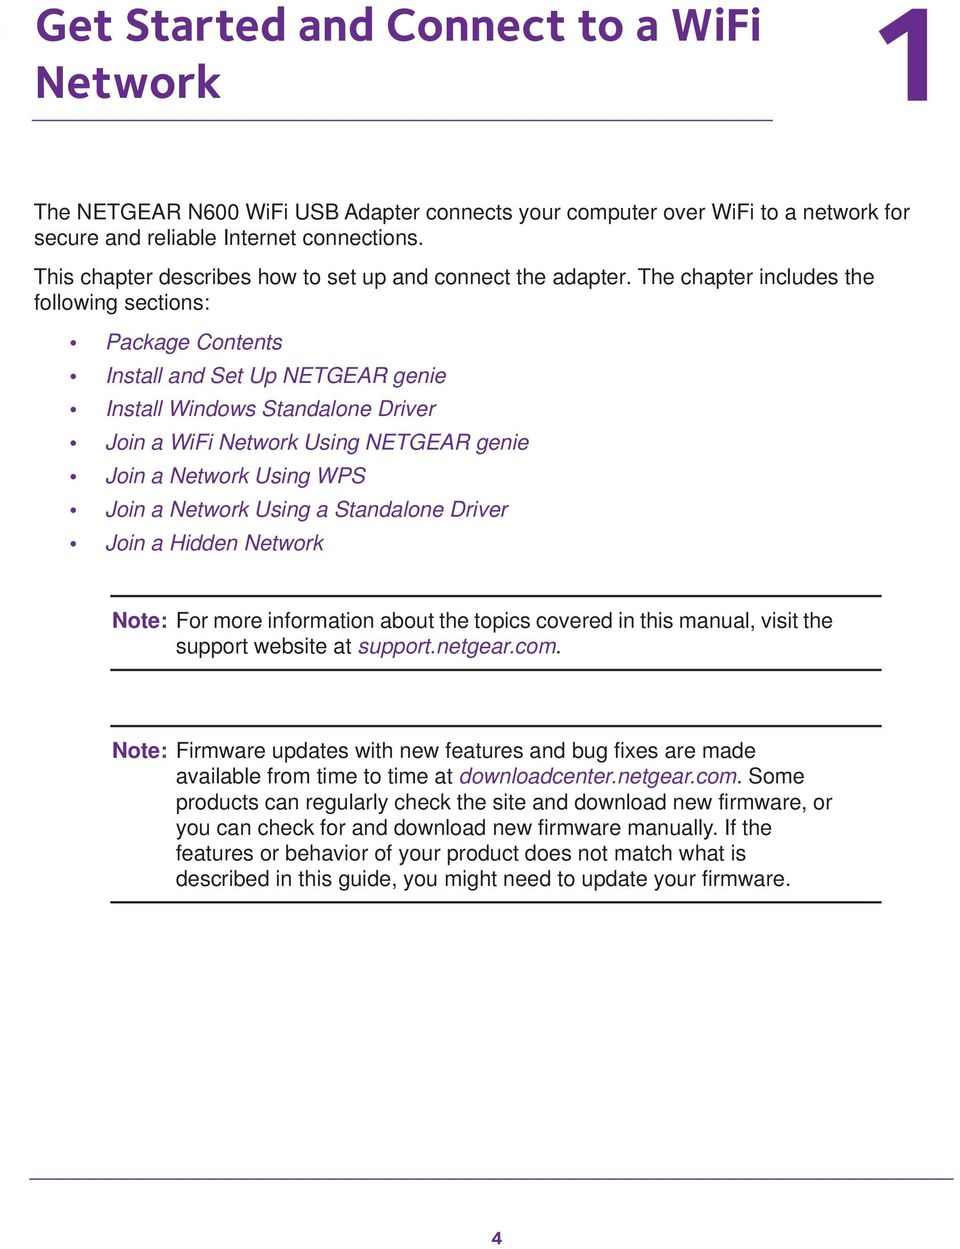 The chapter includes the following sections: Package Contents Install and Set Up NETGEAR genie Install Windows Standalone Driver Join a WiFi Network Using NETGEAR genie Join a Network Using WPS Join